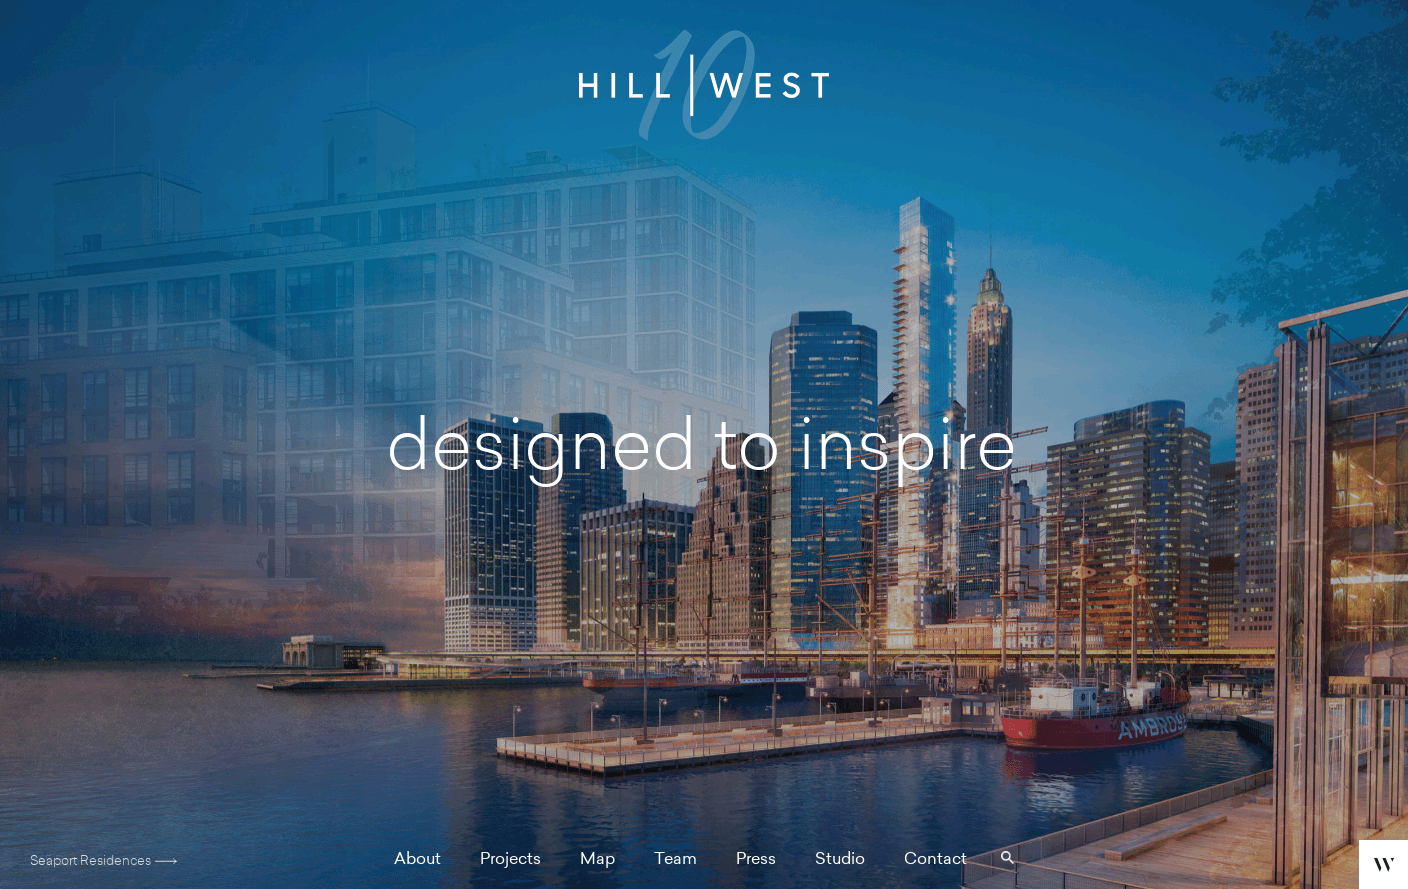 Hill | West